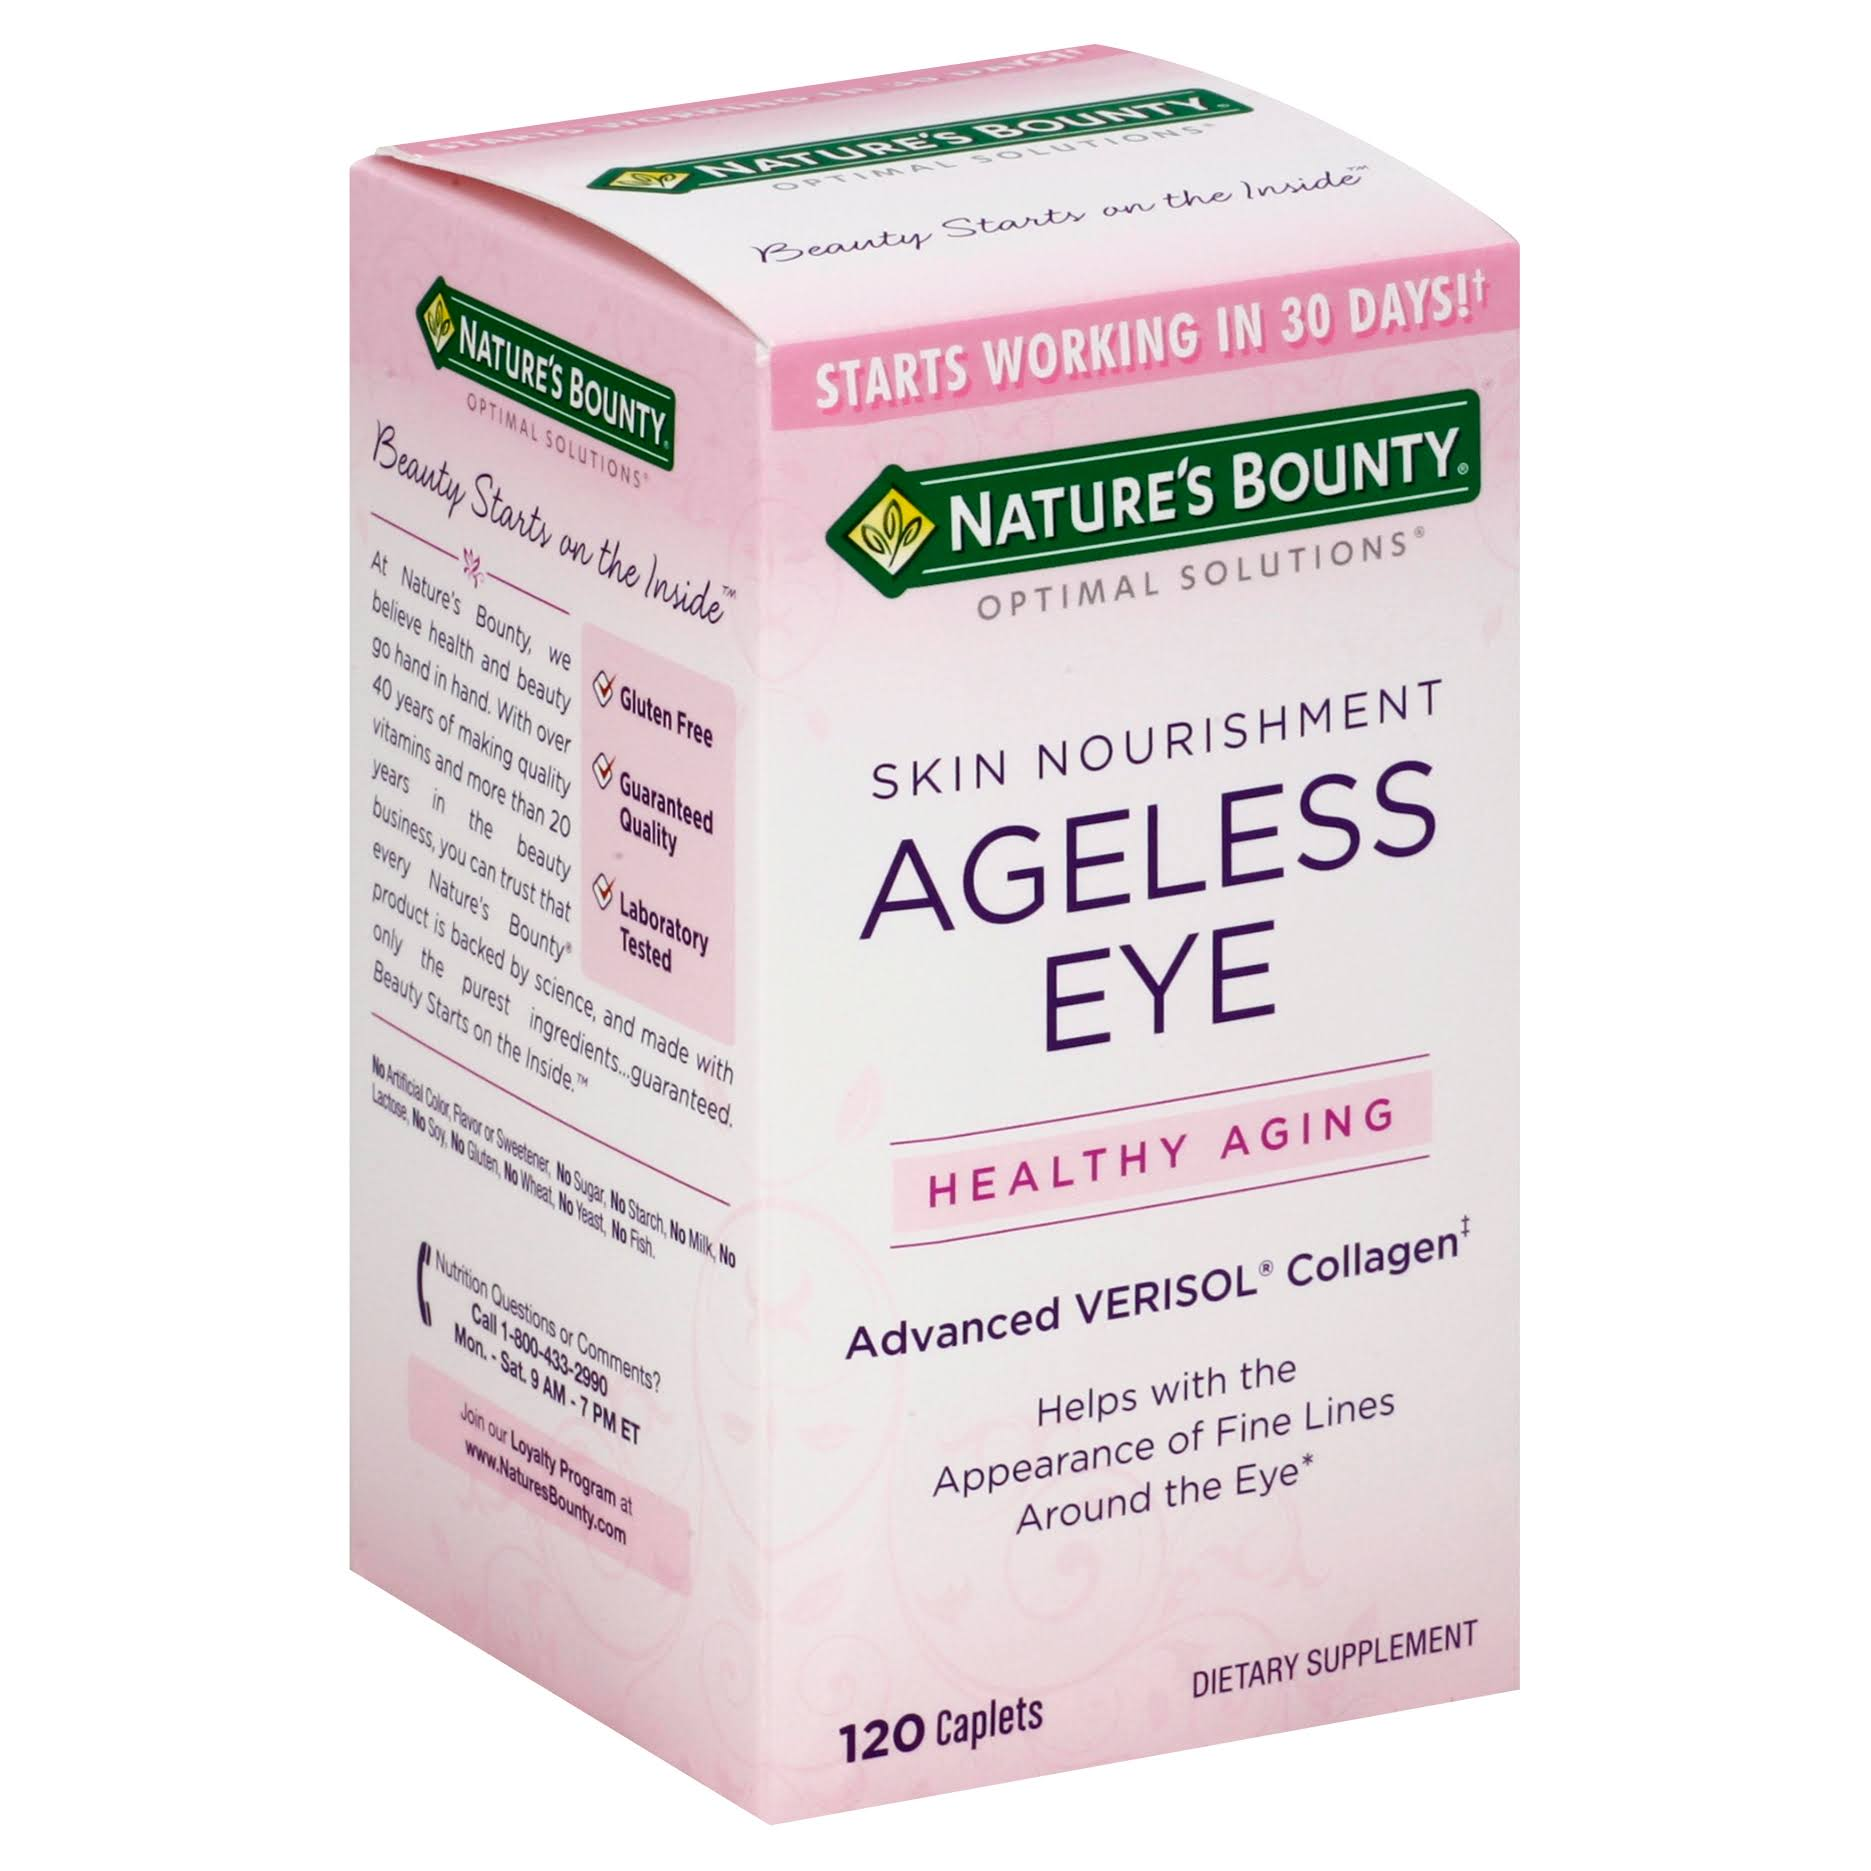 Nature's Bounty Optimal Solutions Ageless Eye Verisol Collagen Supplement - 120 Count